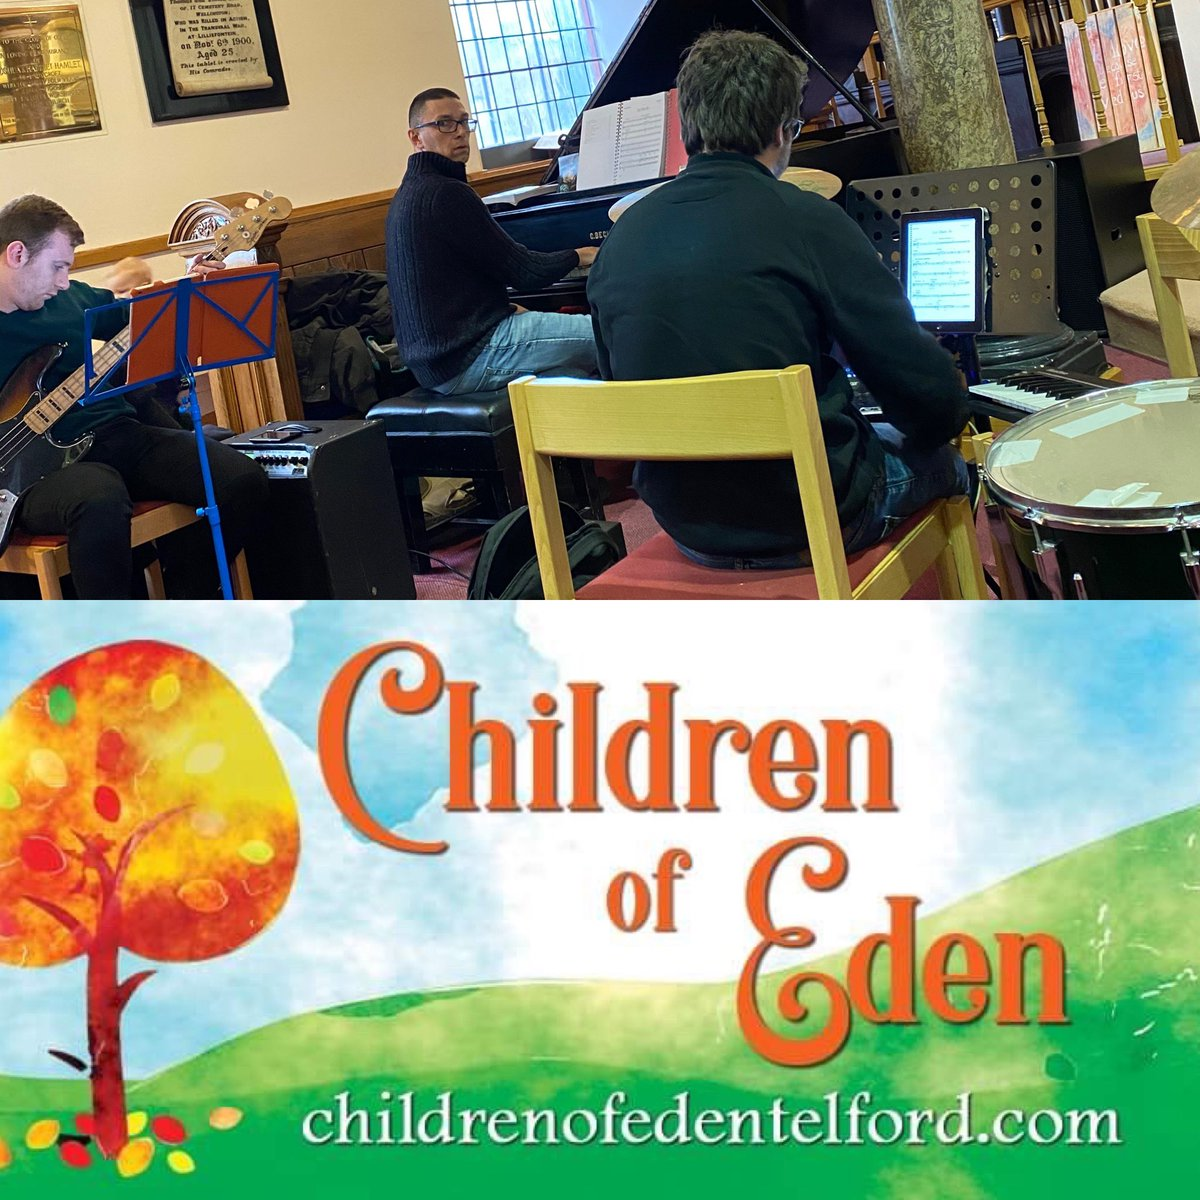 Rehearsal number 2 of the day...Children of Eden band call   .  #star #actors #actor #actorslife #actress #instamovies #musical #livemusic #concertphoto #newmusic #livephotography #musiclife #rockphotography #concertphotography #concertjunkie #musicphotographypic.twitter.com/03OhDL4www